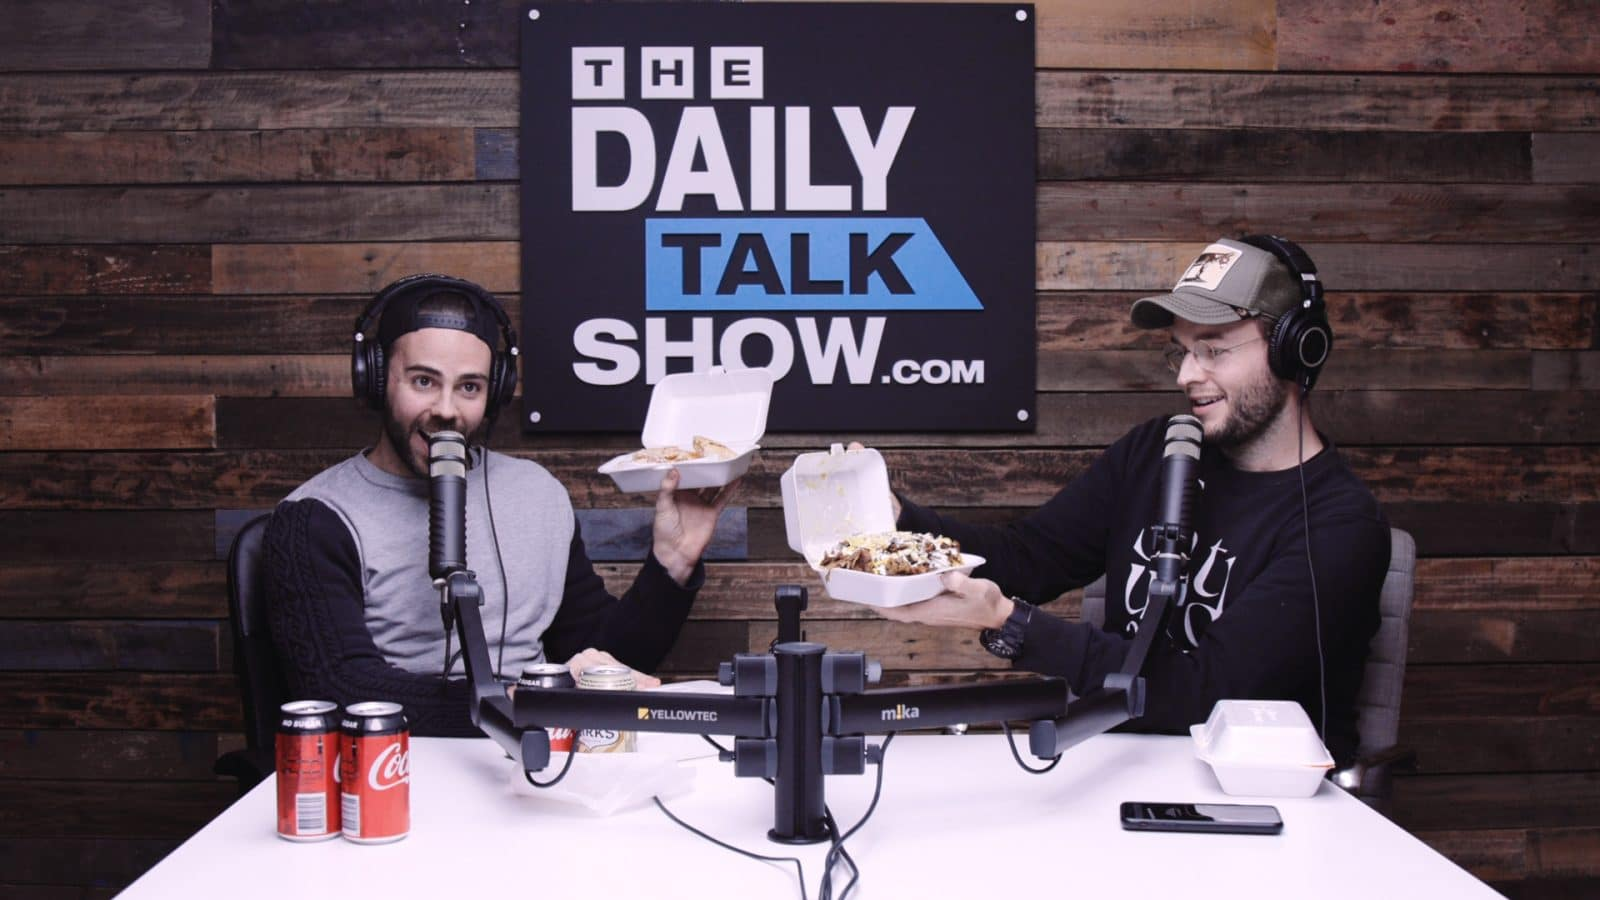 The-Daily-Talk-Show-405